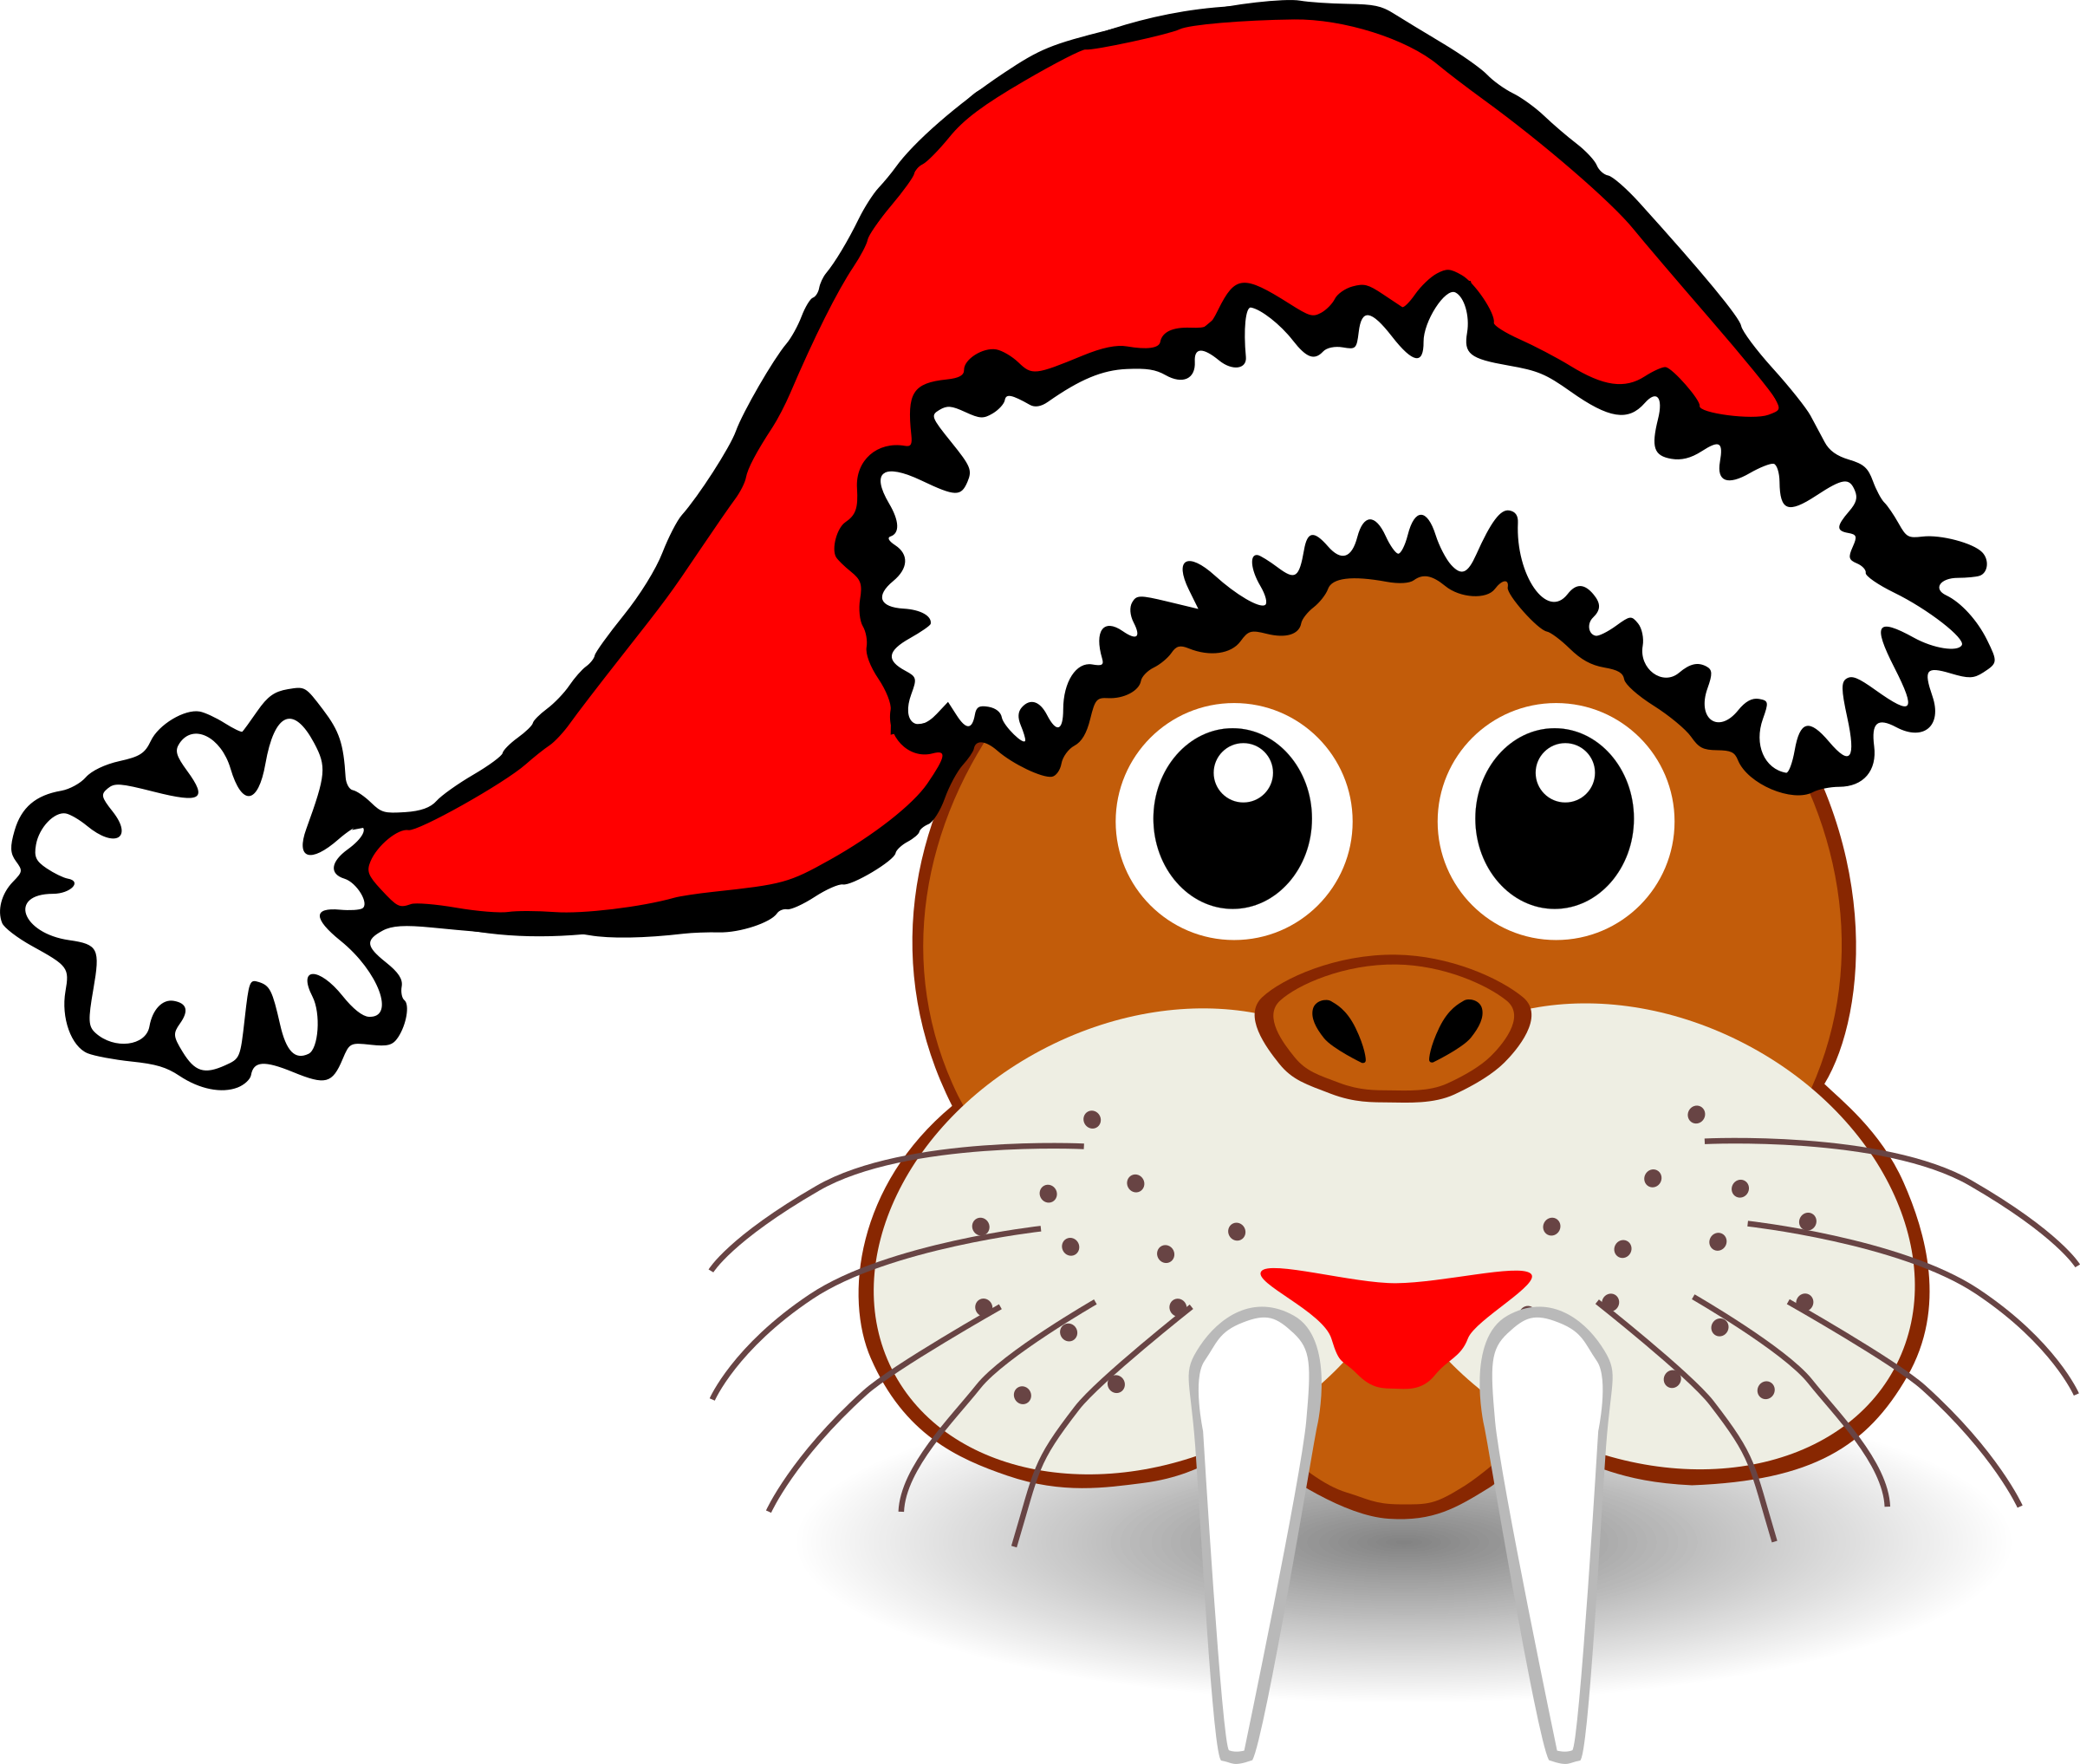 Face clipart santa claus. Funny walrus with hat